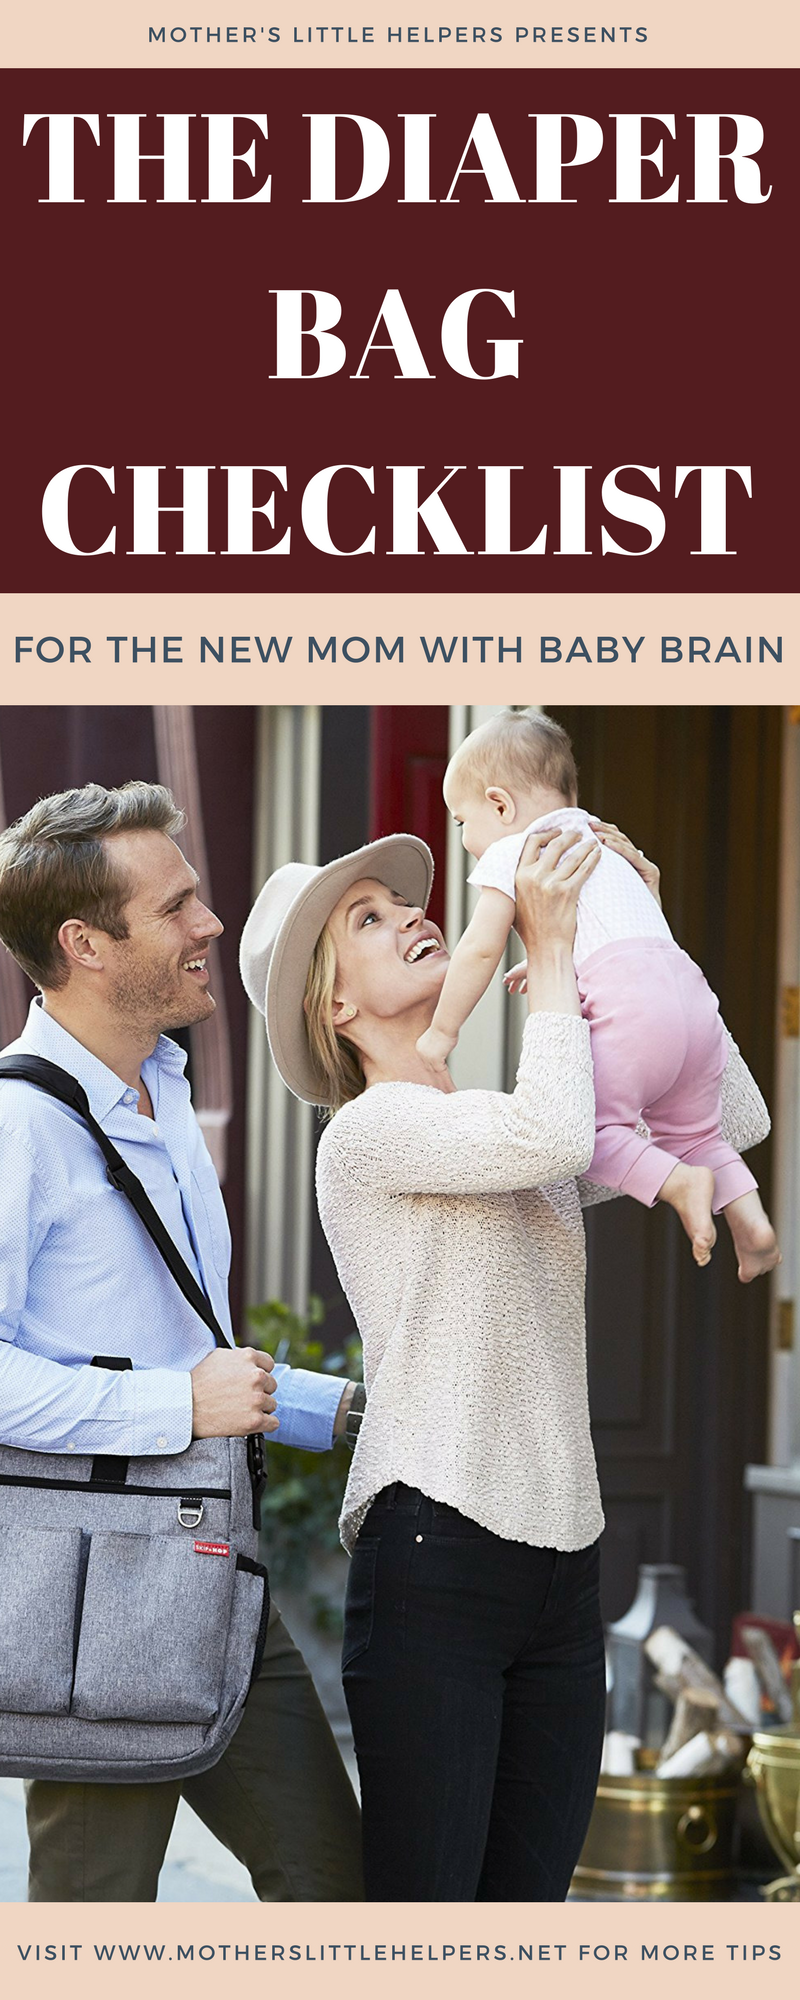 """Rest your mind at ease by using """"The Diaper Bag Checklist for the New Mom with Baby Brain"""" so that you and your baby never leave the house unprepared! 